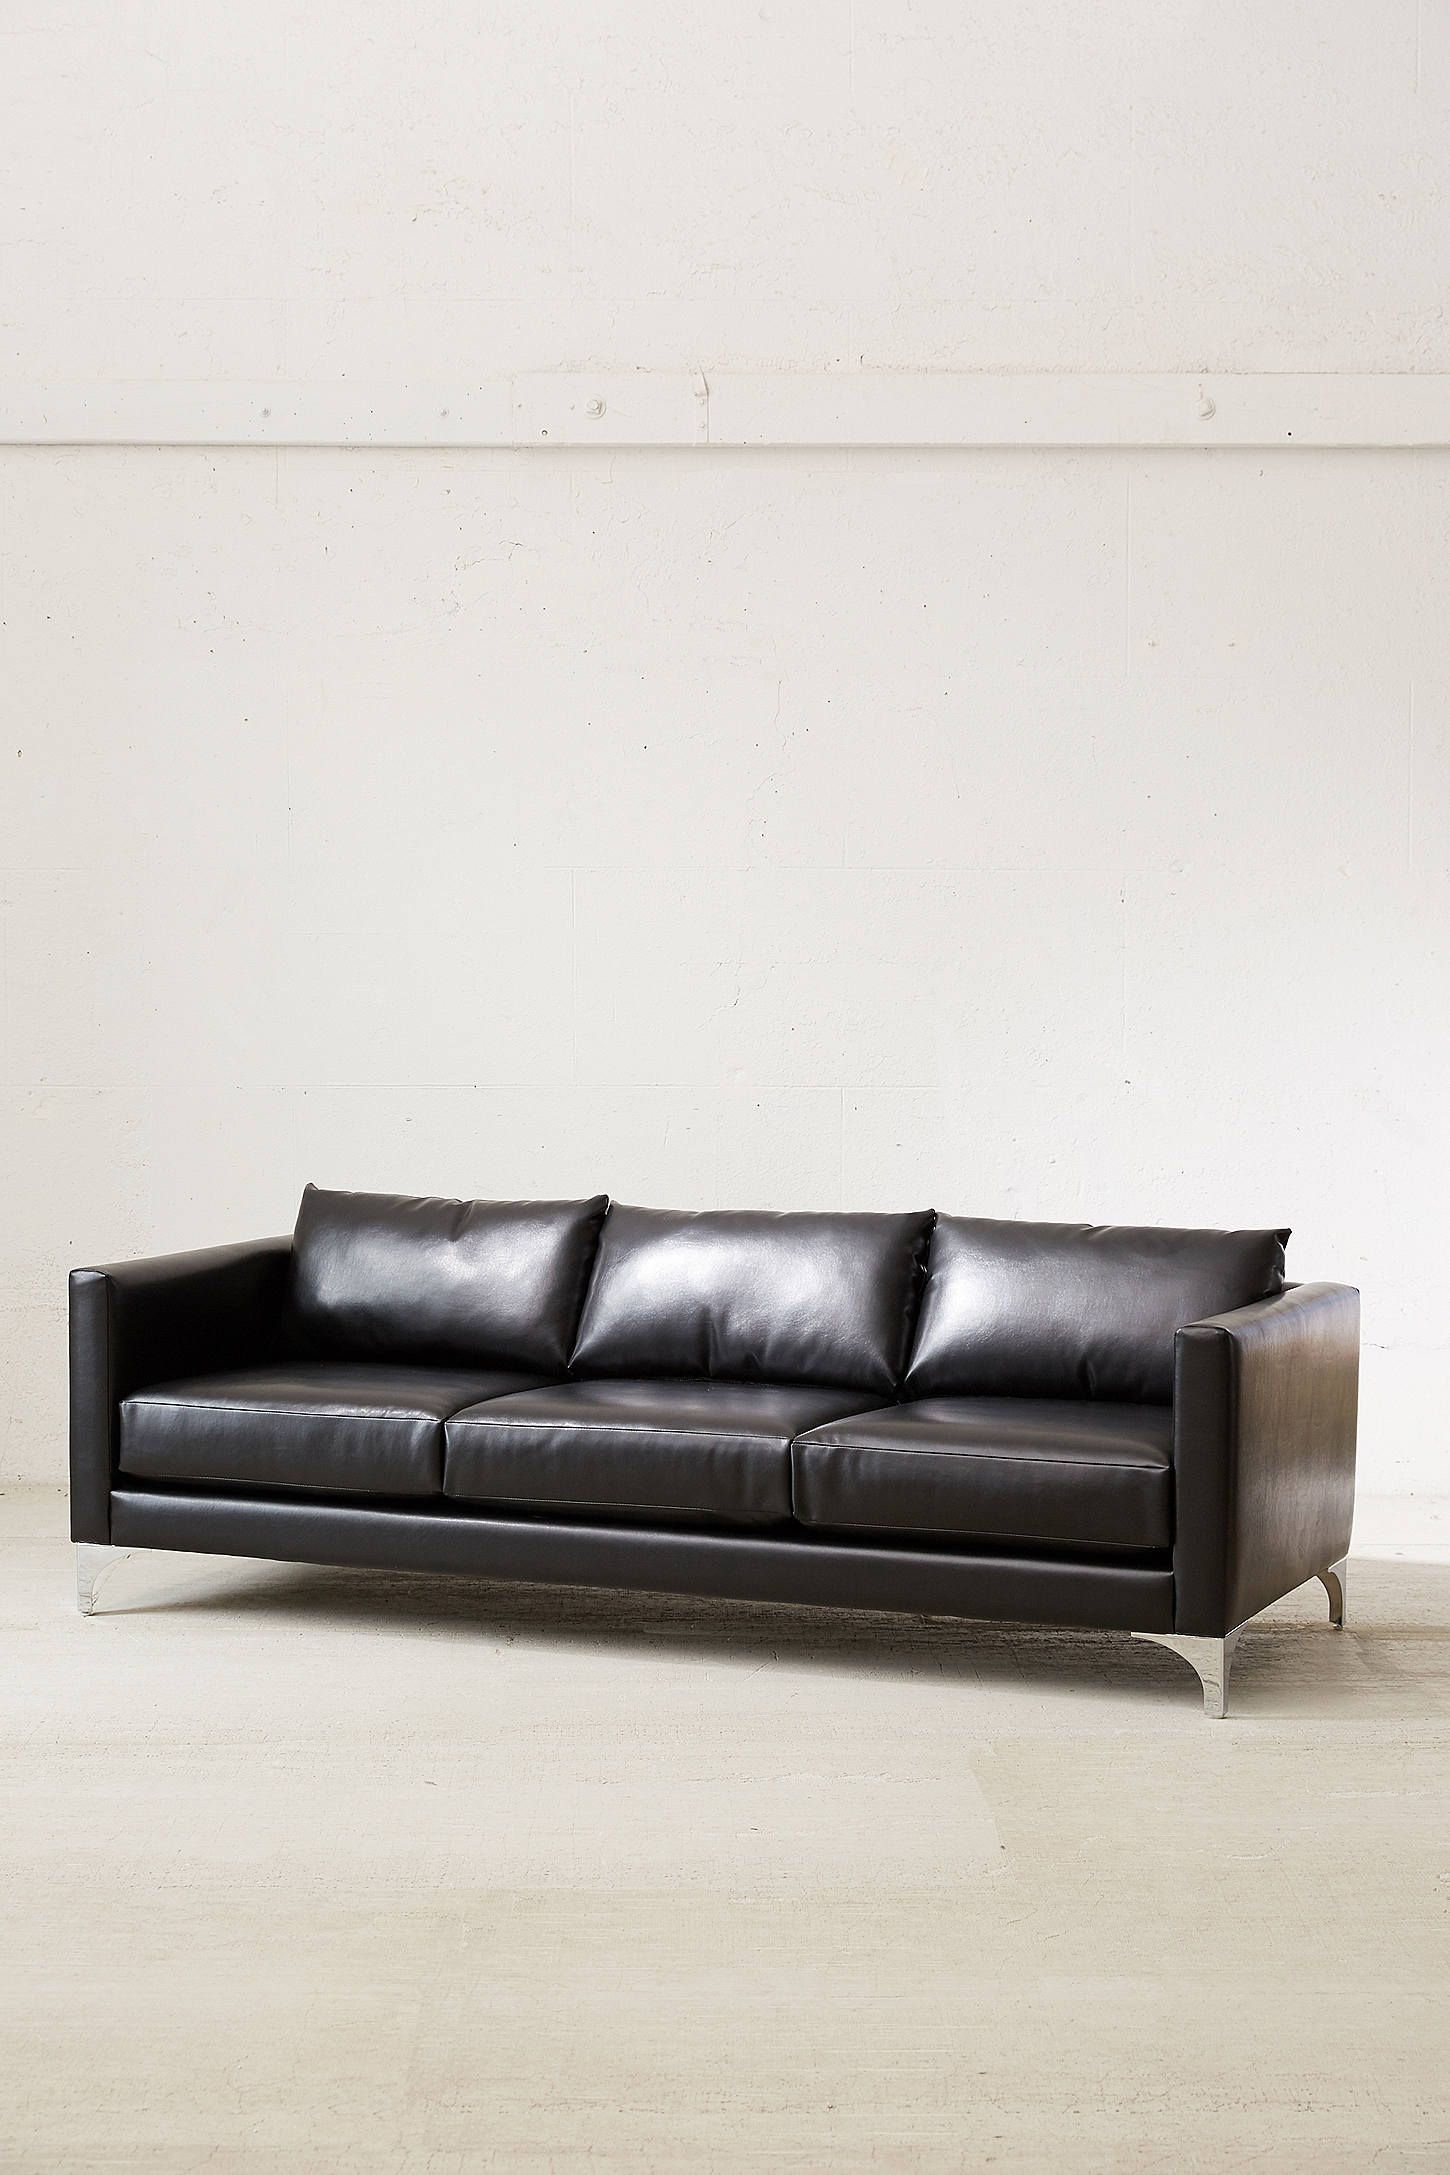 Fine Chamberlin Recycled Leather Sofa 1025Theparty Com Pabps2019 Chair Design Images Pabps2019Com